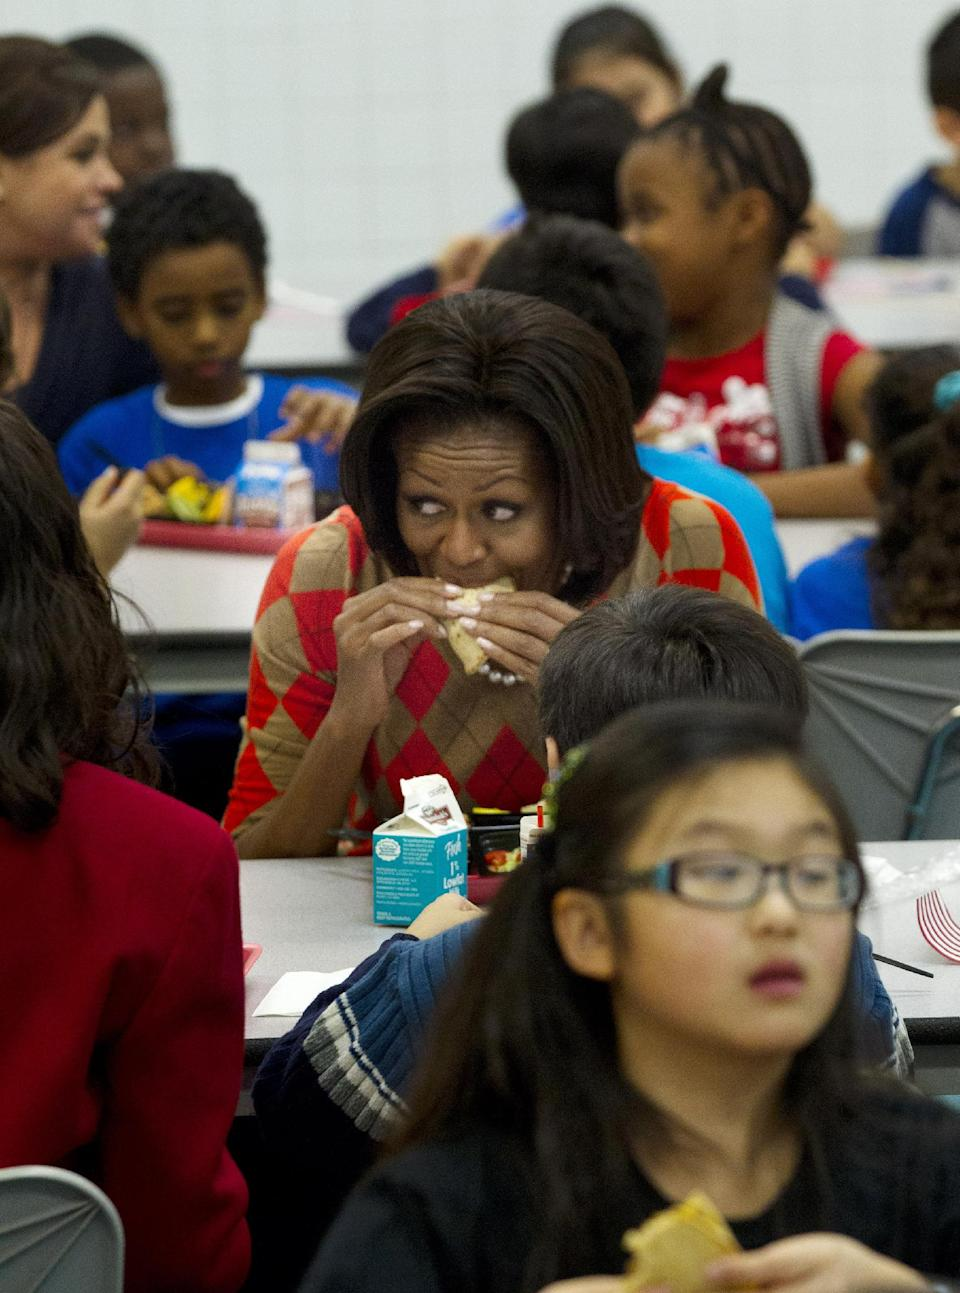 First lady Michelle Obama takes a bit of her turkey taco as she has lunch with school children at Parklawn Elementary School in Alexandria, Va. (AP Photo/Pablo Martinez Monsivais)